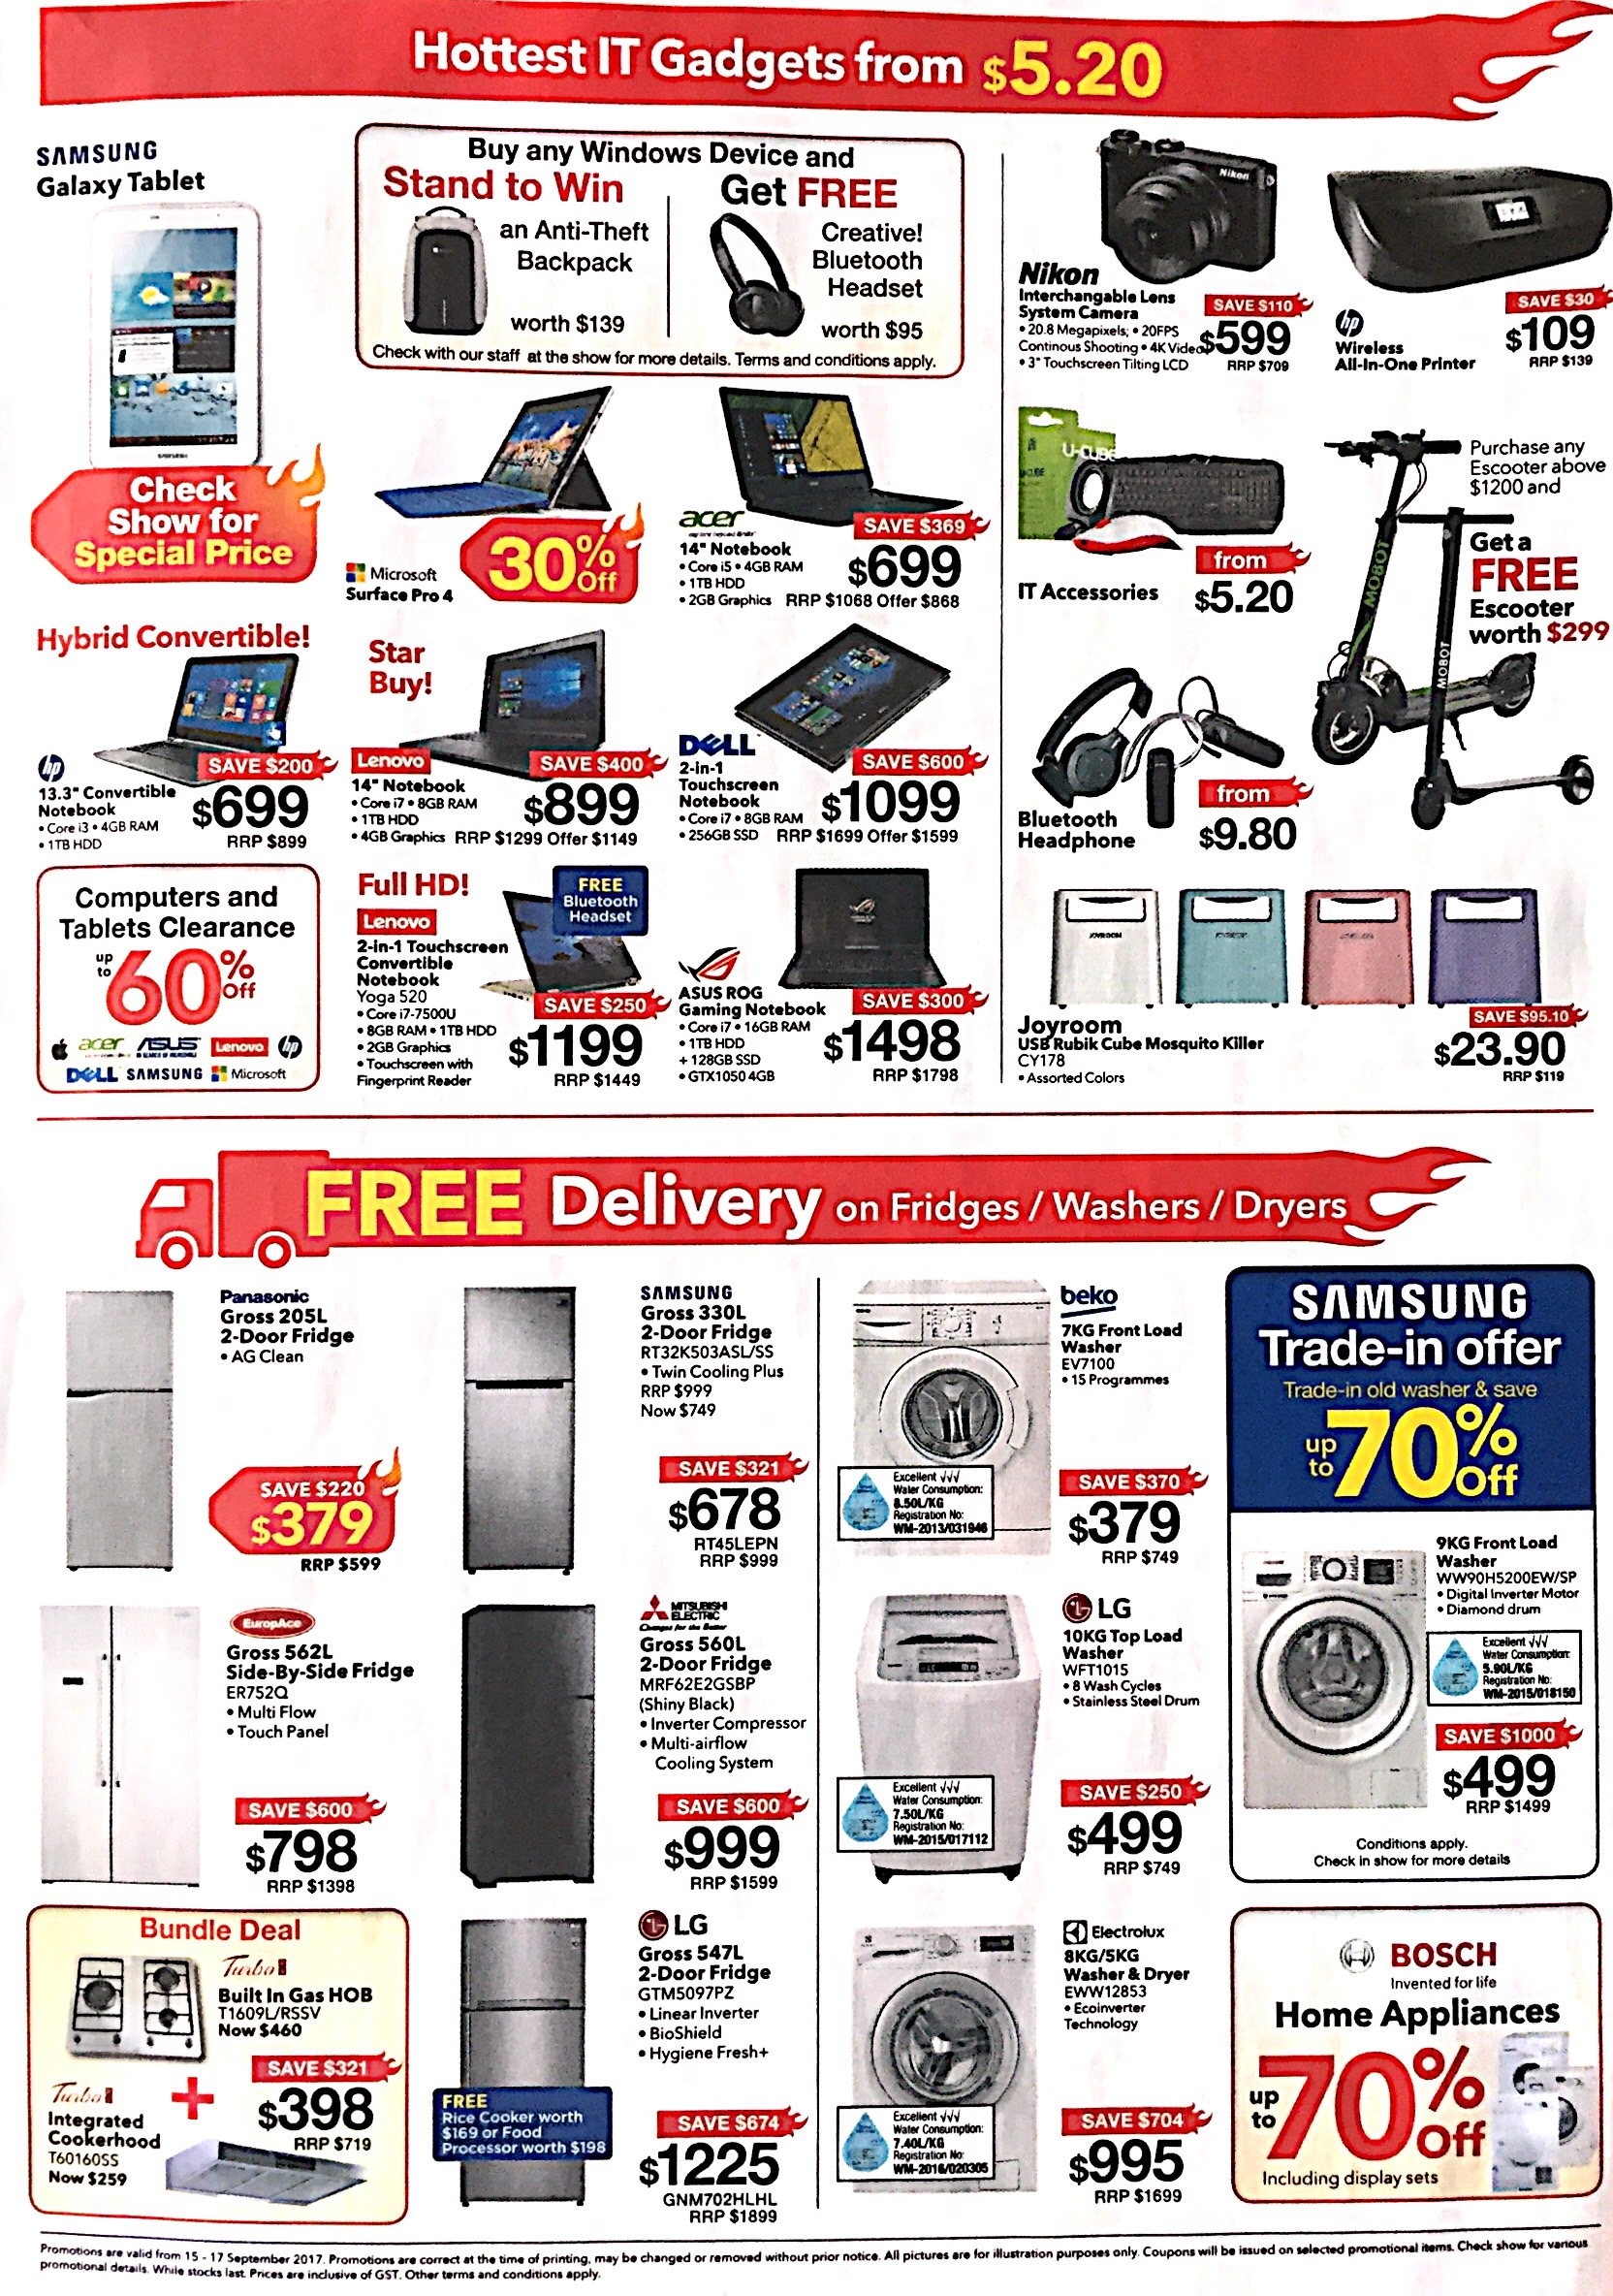 Gadgets, Home Electronics and Appliances Expo   15-17 Sept 2017   pg3